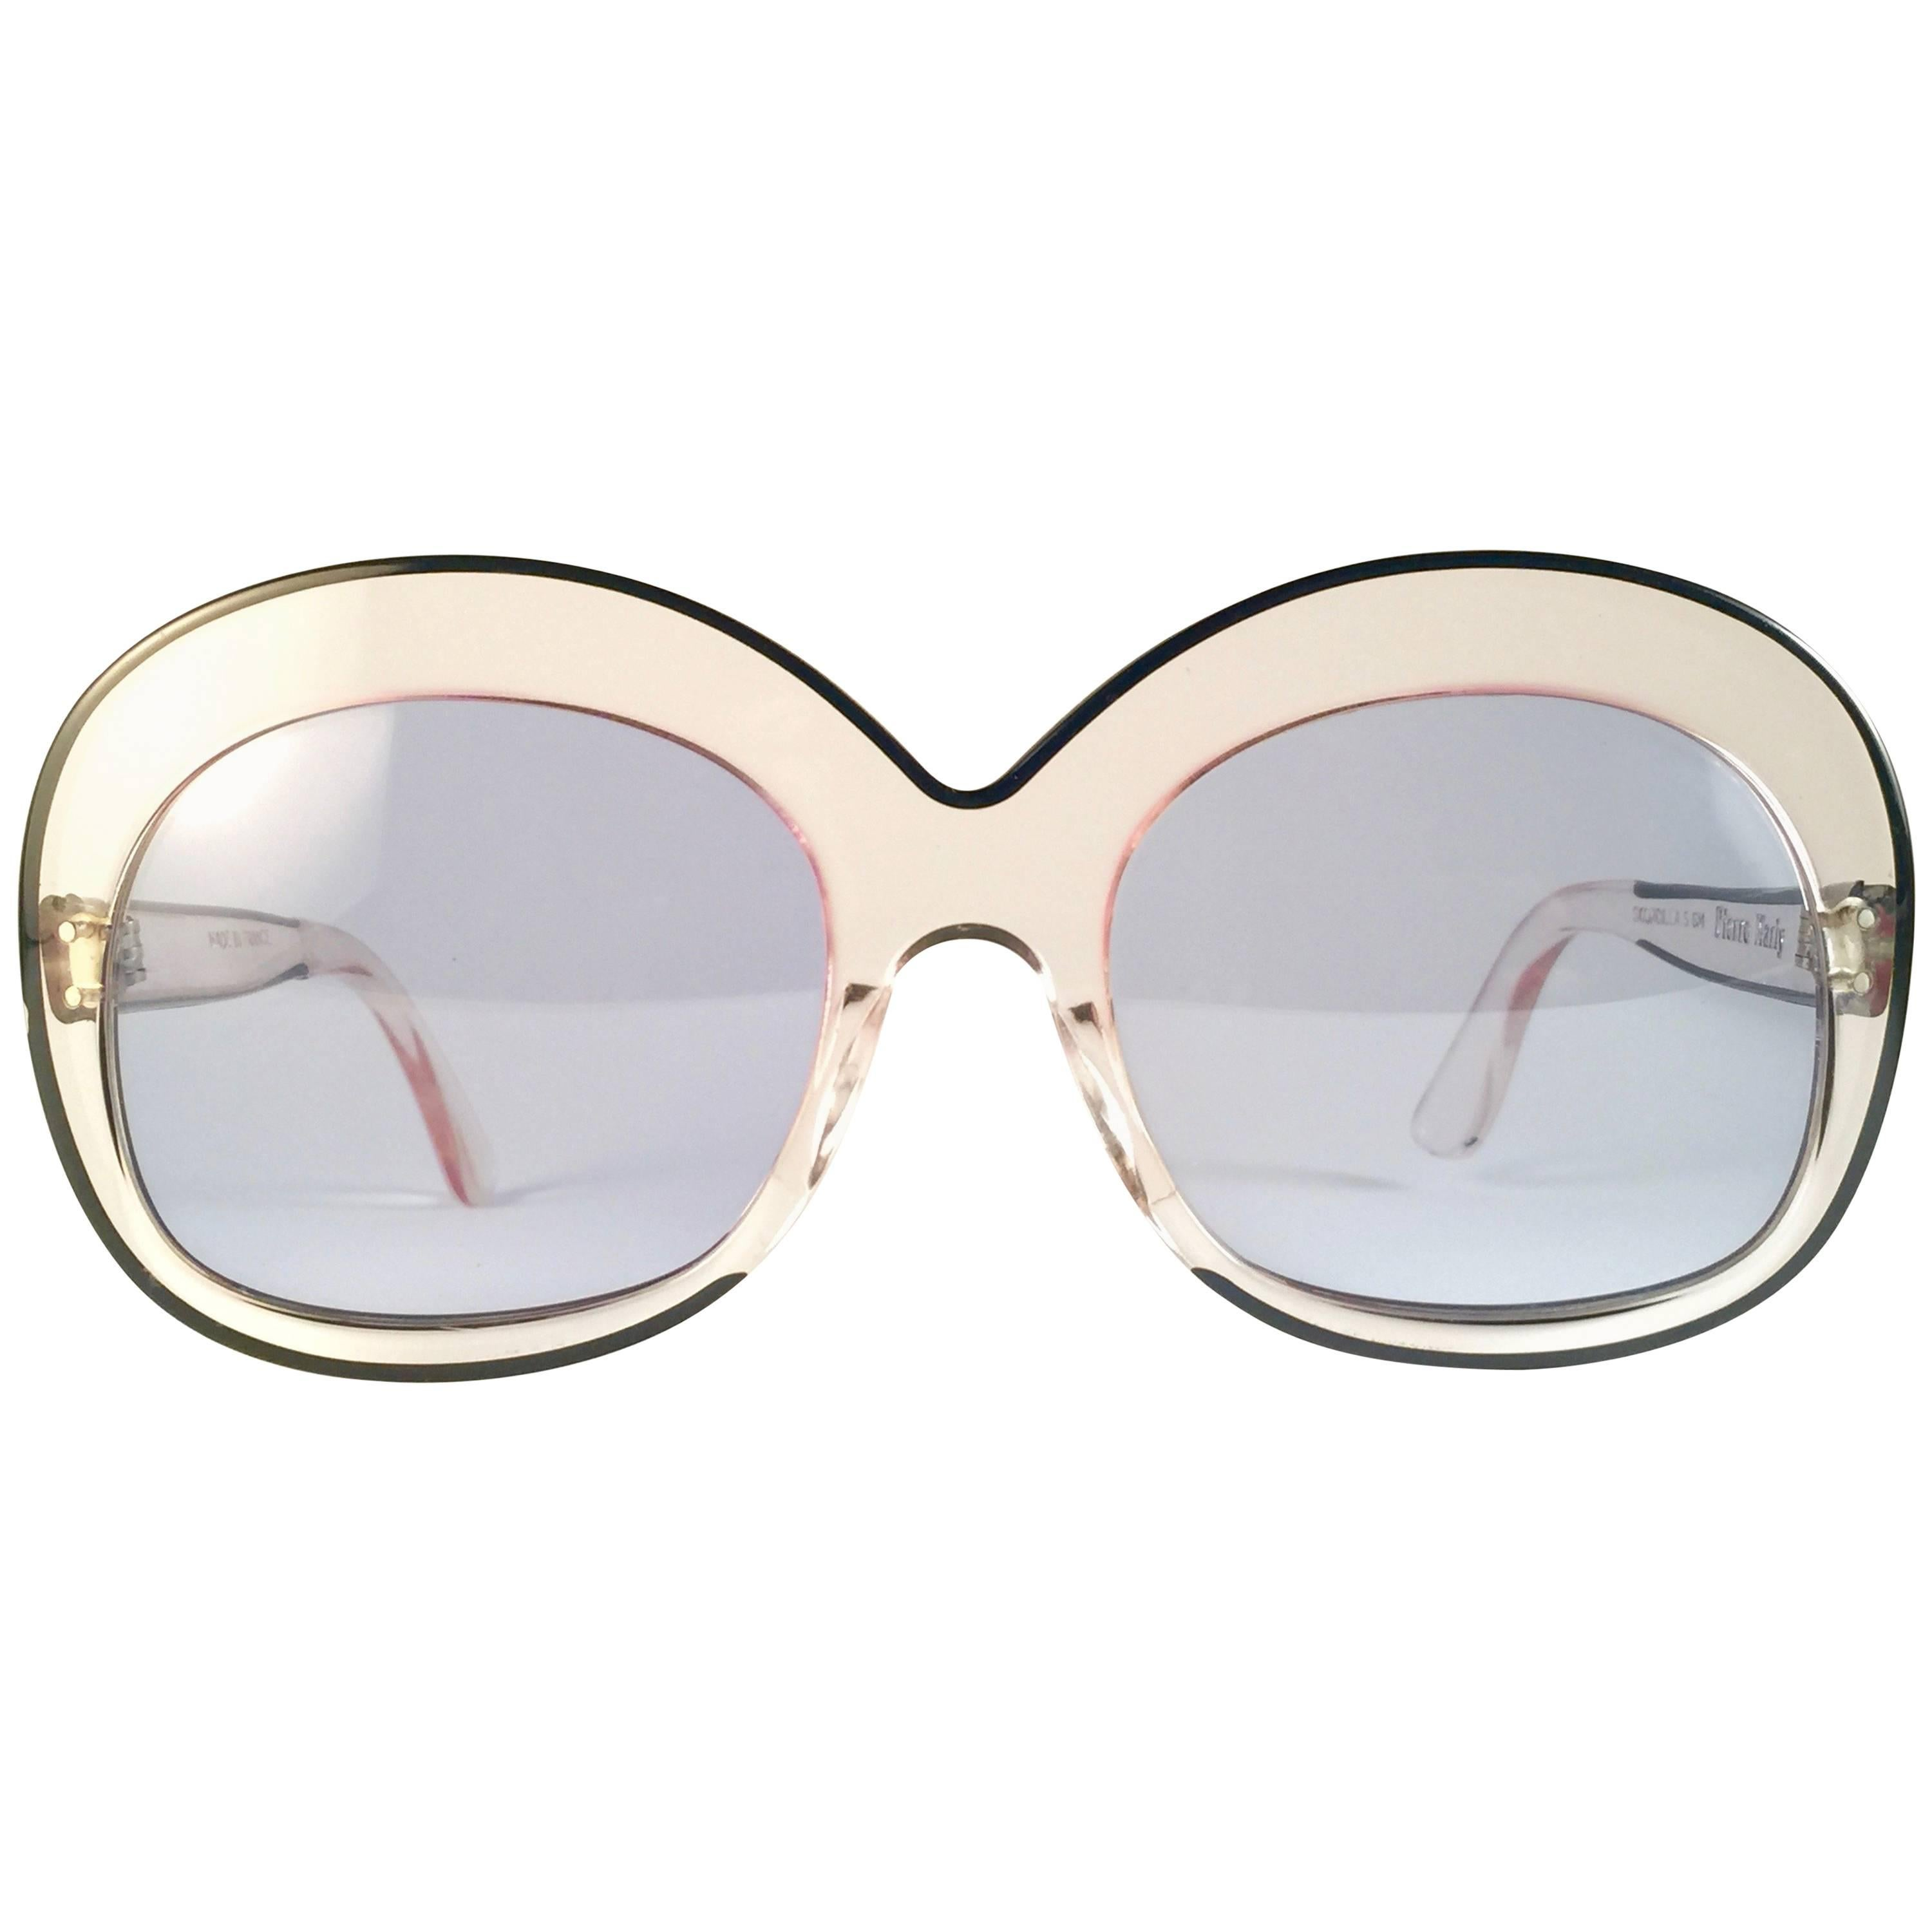 Clear Sourcilla Oversized Marly Vintage Rare 1960's New Pierre Sunglasses 8wPn0Ok